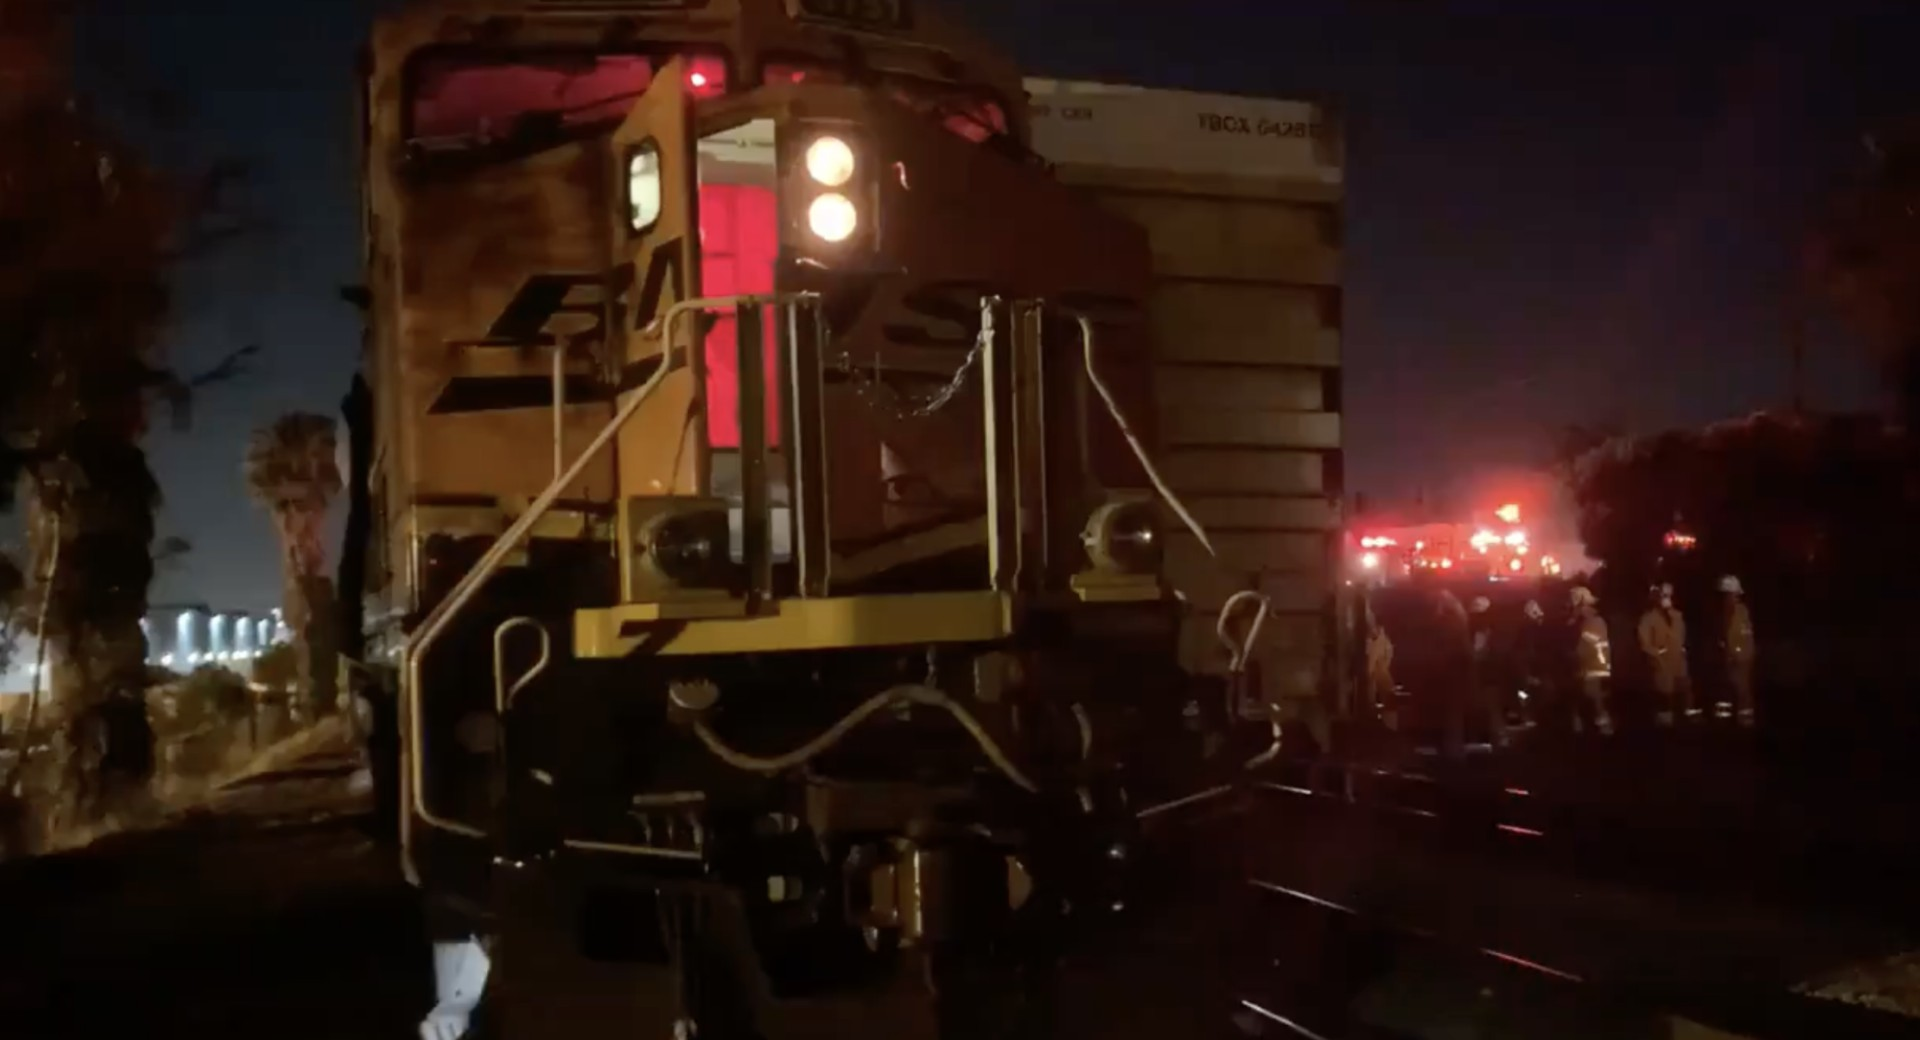 An investigation is underway after a railway worker was crushed between two trains in Buena Park on March 3, 2021. (Orange County Fire Authority)